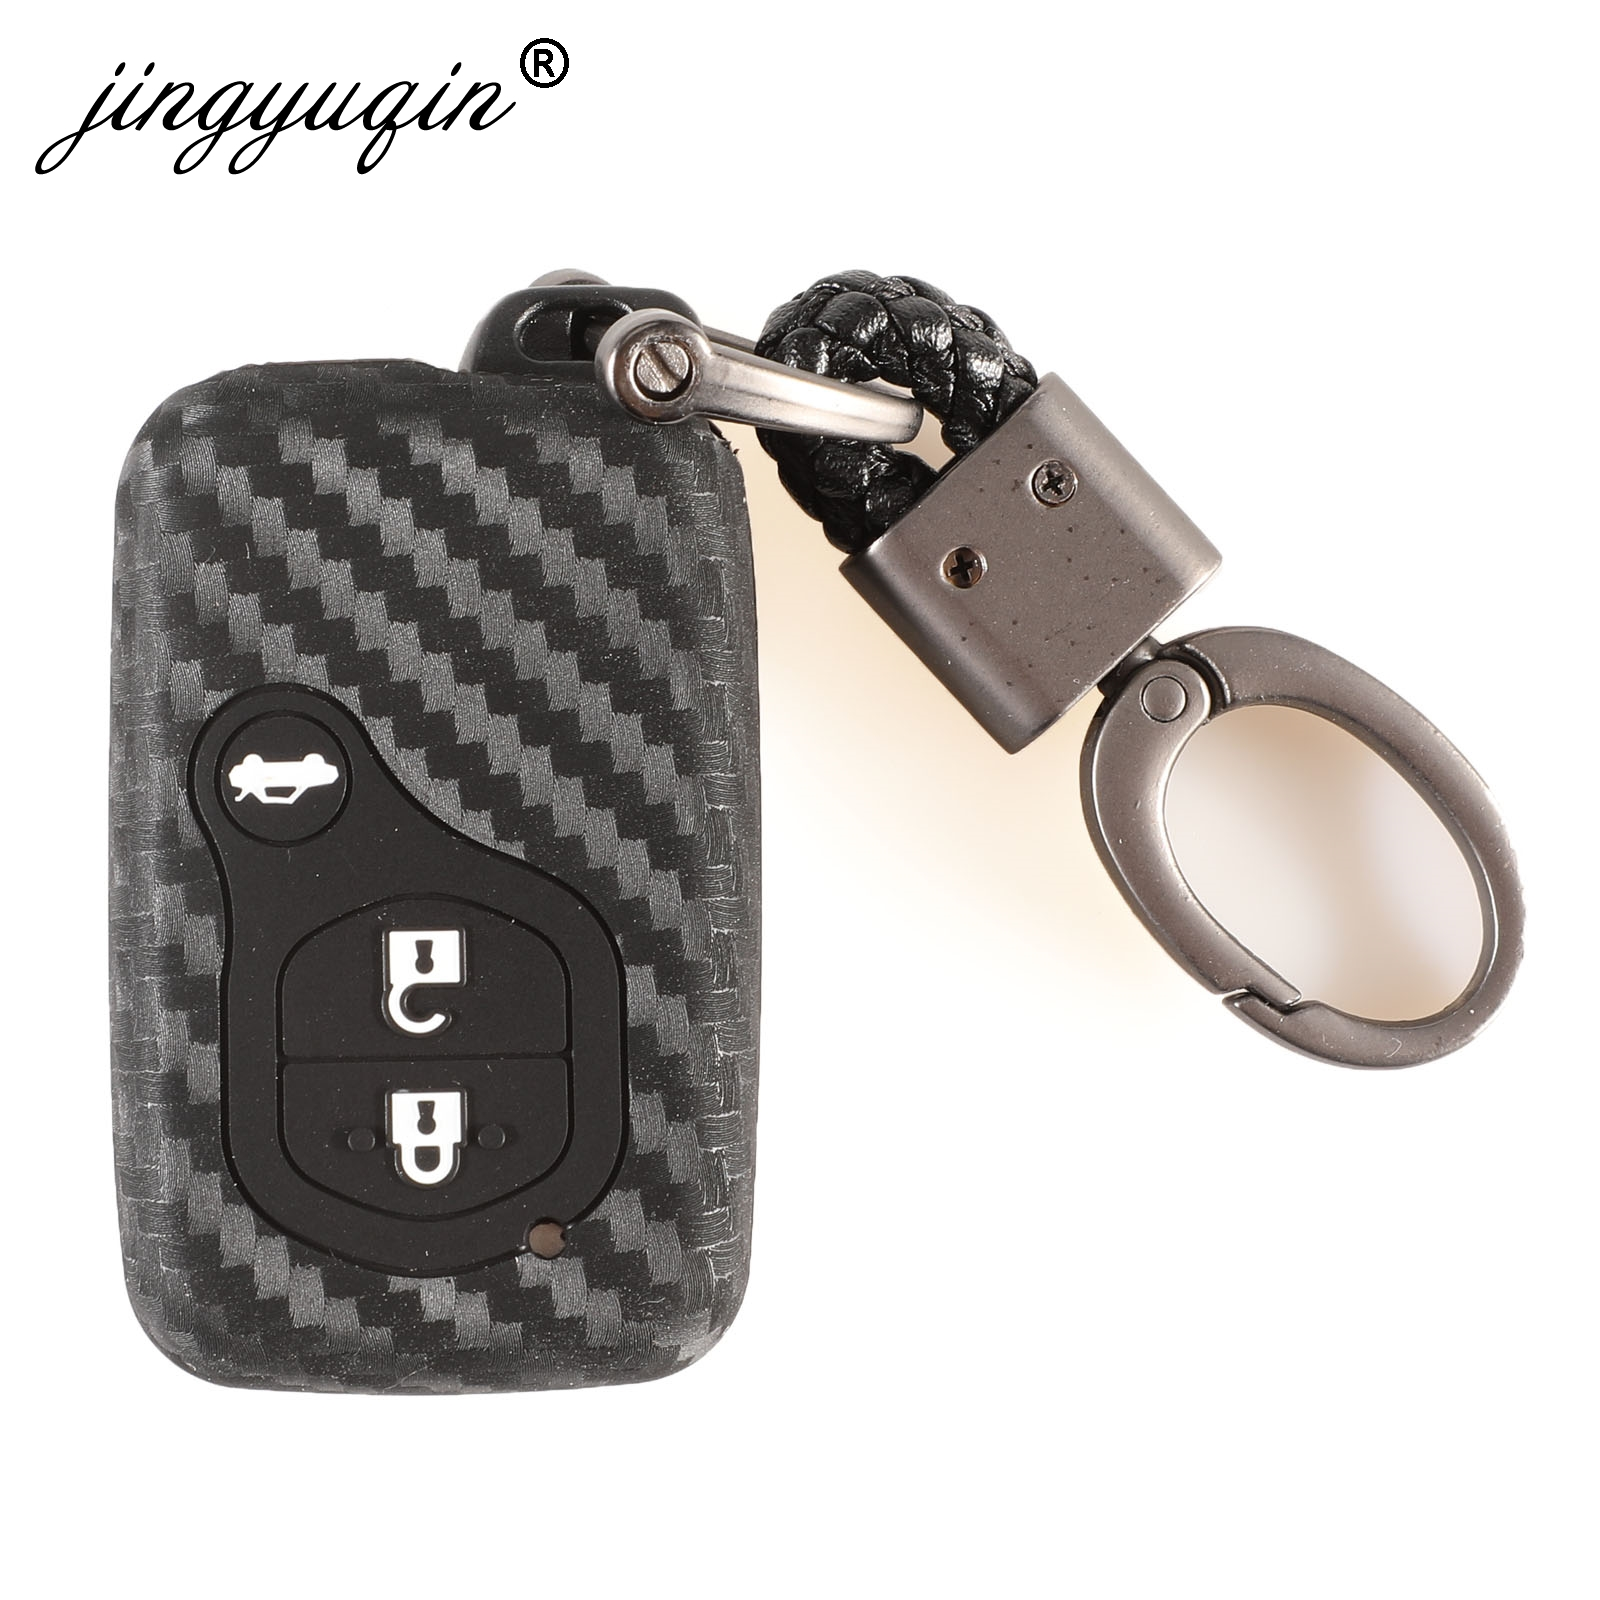 Rubber Carbon Car Key Case Cover For Toyota Land Cruiser Prado 150 Camry Prius Crown Subaru Foreste XV Keychain Silicone Holder